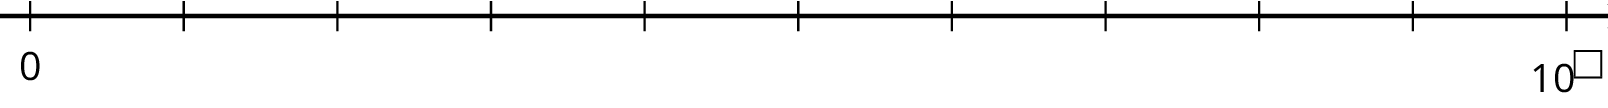 A number line with eleven evenly spaced tick marks. The first tick is labeled 0, the last tick is labeled 10 to the blank power, and the remaining tick marks are blank.